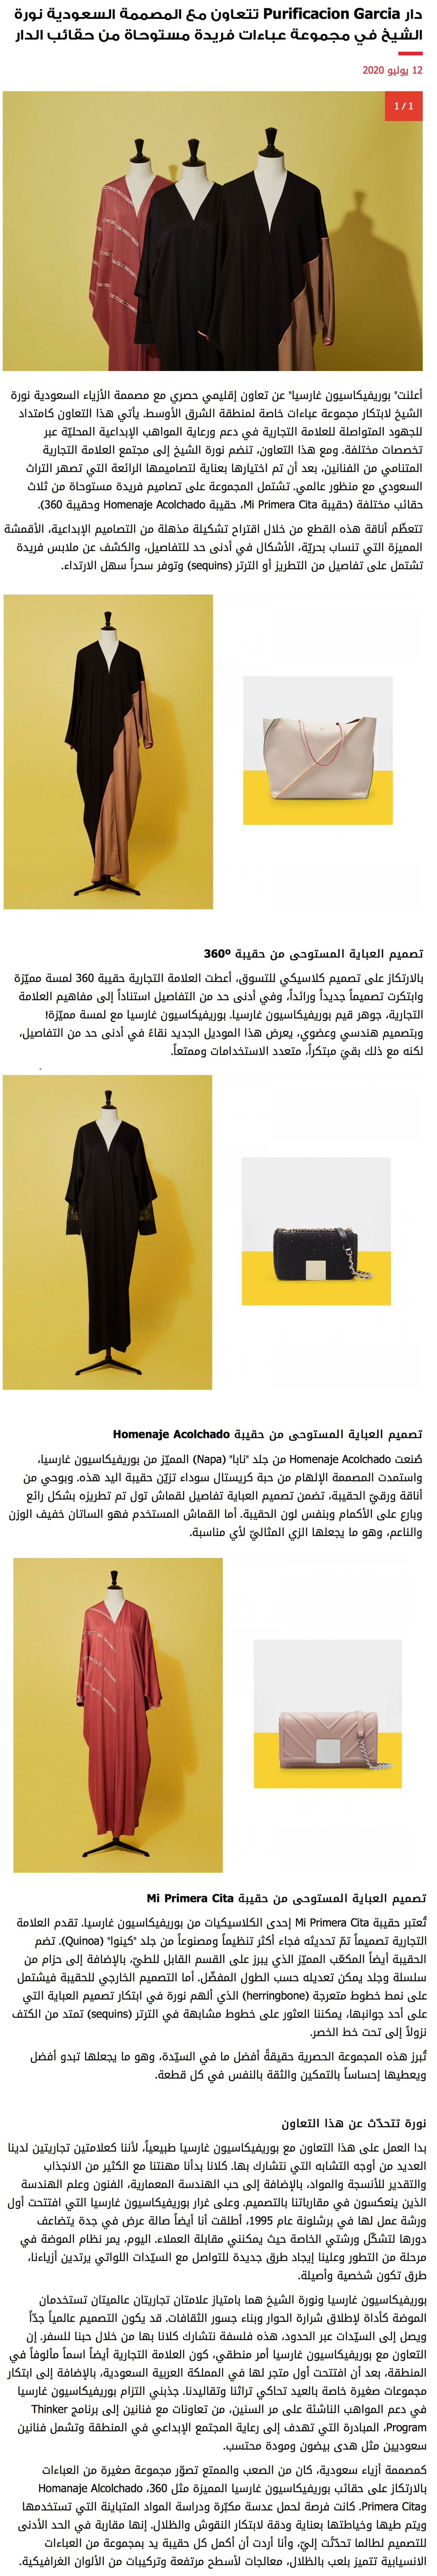 2020-20june-20laha-20magazine